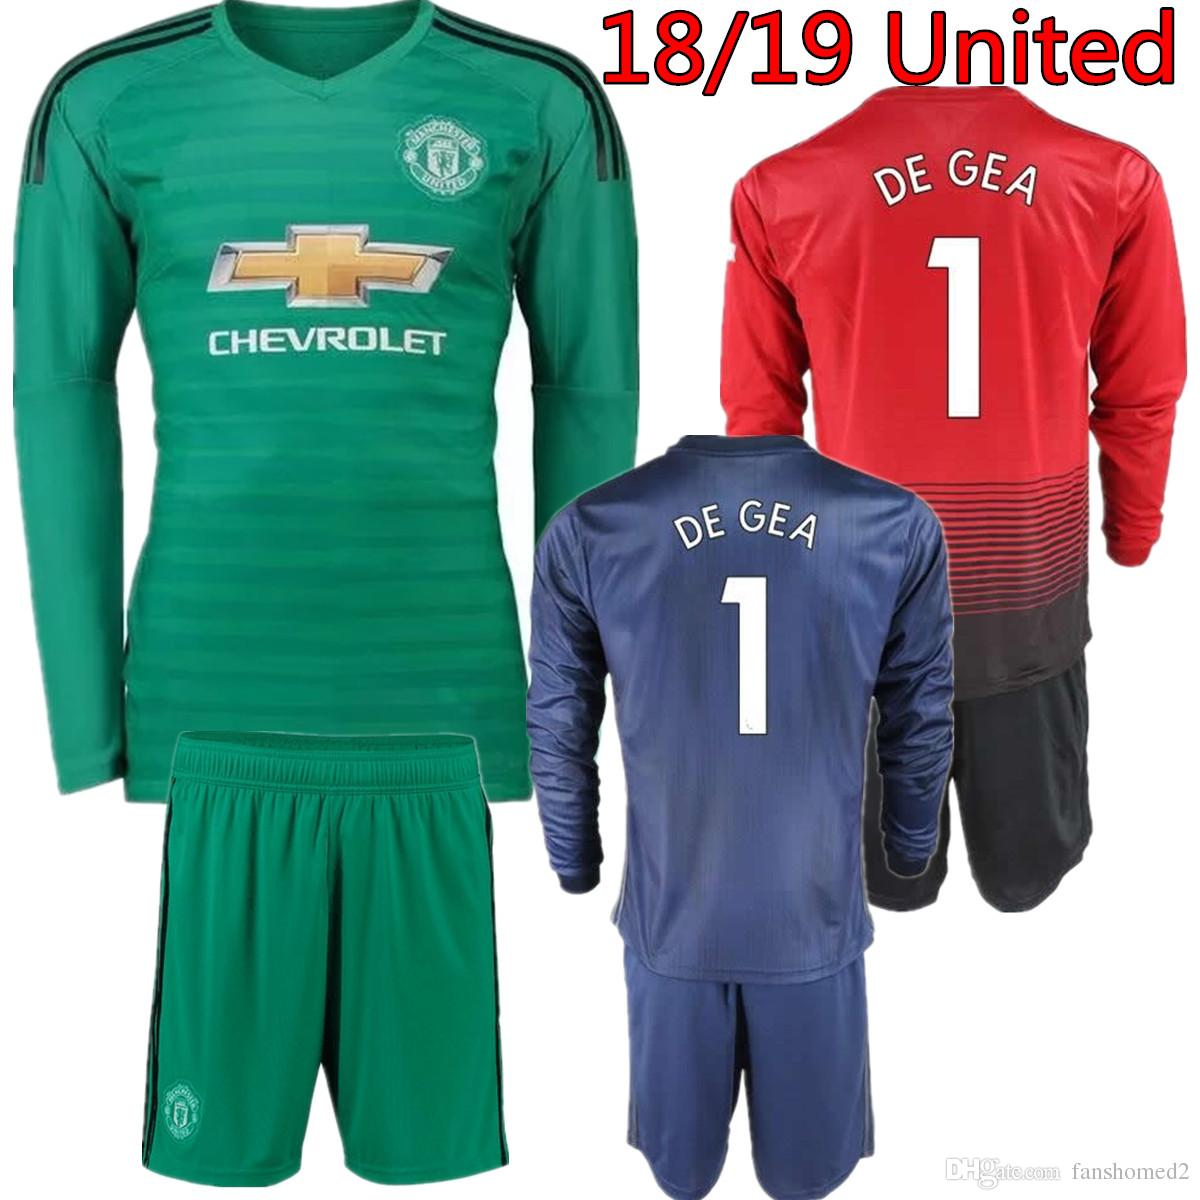 34cac2b3d8d 2019 2018 2019 Long Sleeve  1 De Gea Jersey Goalkeeper Soccer Sets 18 19  Goalie David De Gea Romero Green United Adults Full Football Kit Uniform  From ...